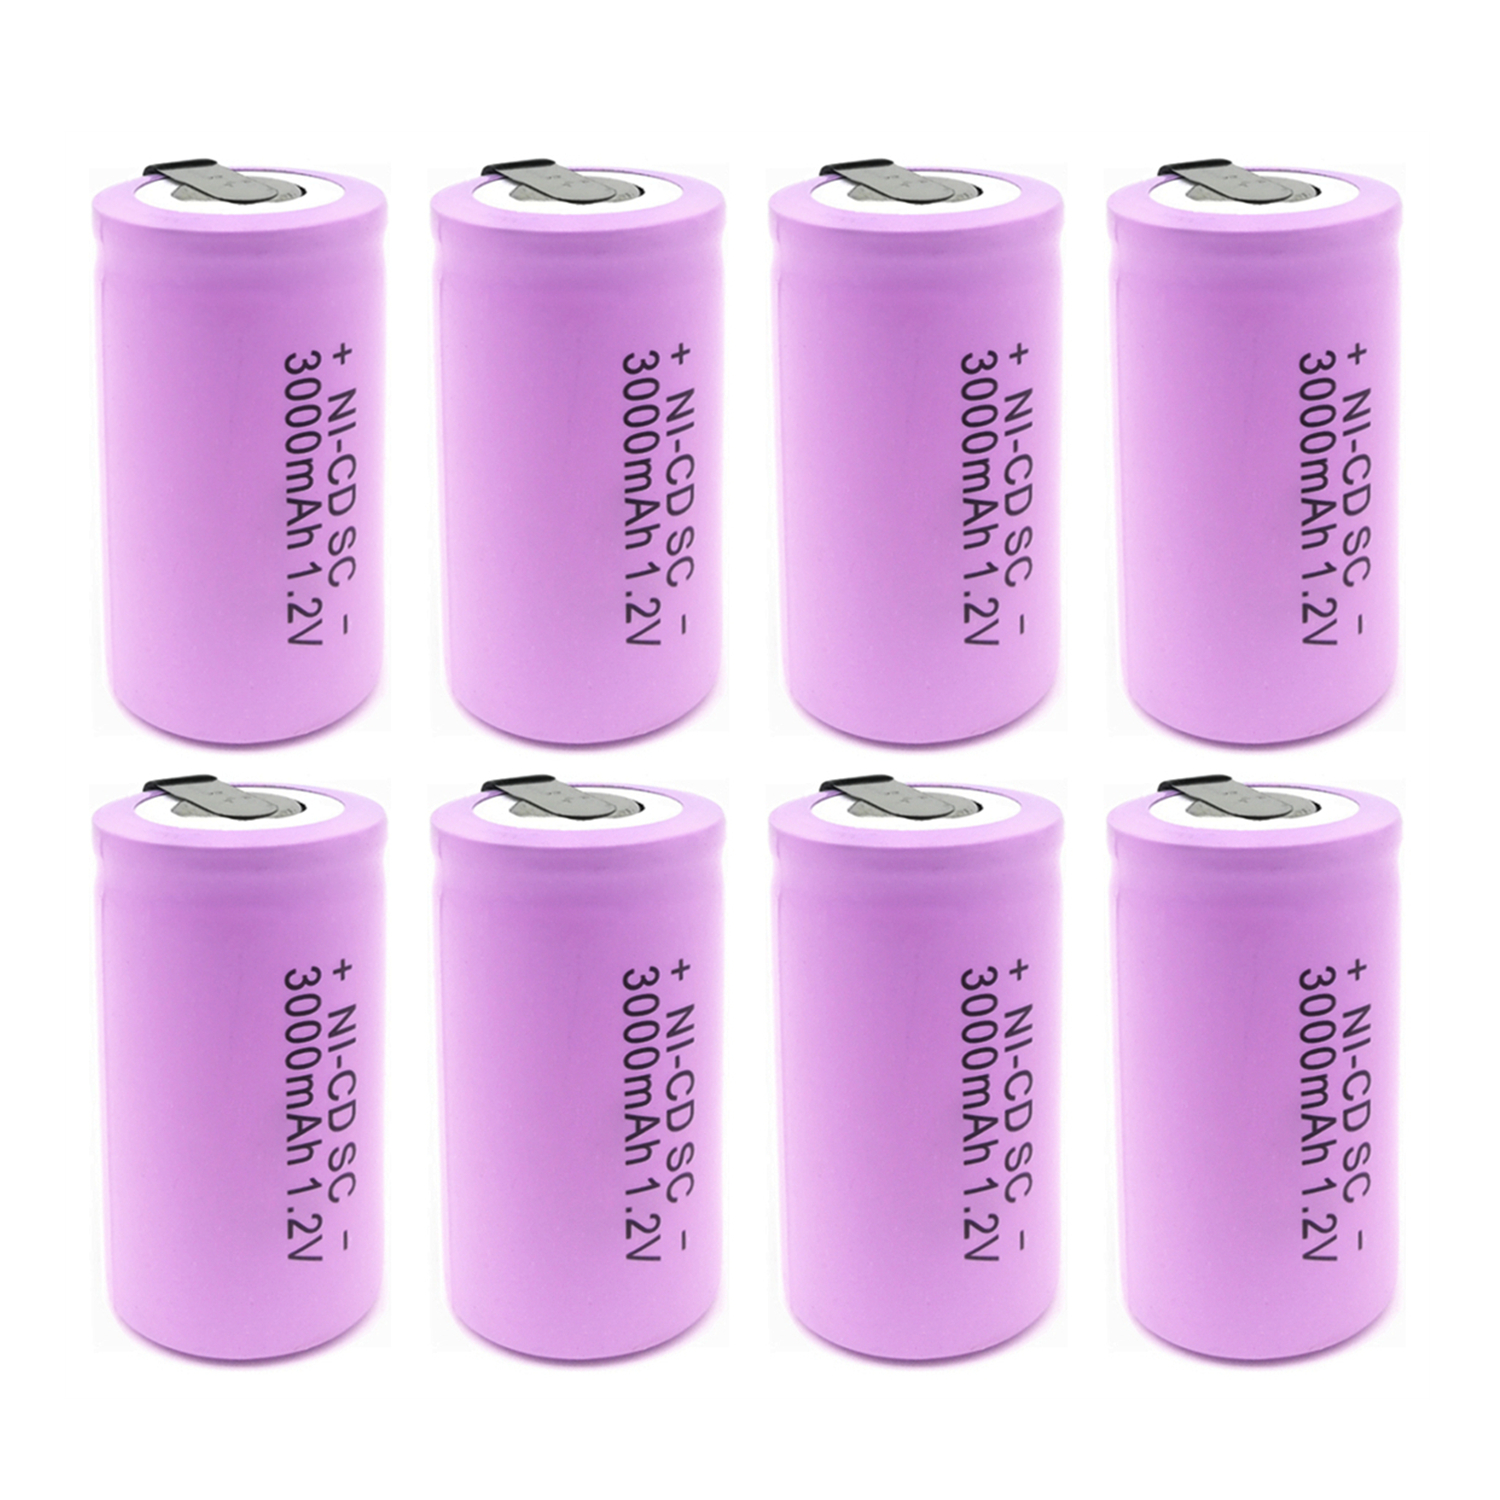 High quality battery rechargeable battery sub battery SC <font><b>Ni</b></font>-<font><b>Cd</b></font> battery <font><b>1.2</b></font> <font><b>v</b></font> with tab 3000 mAh for Electric tool image